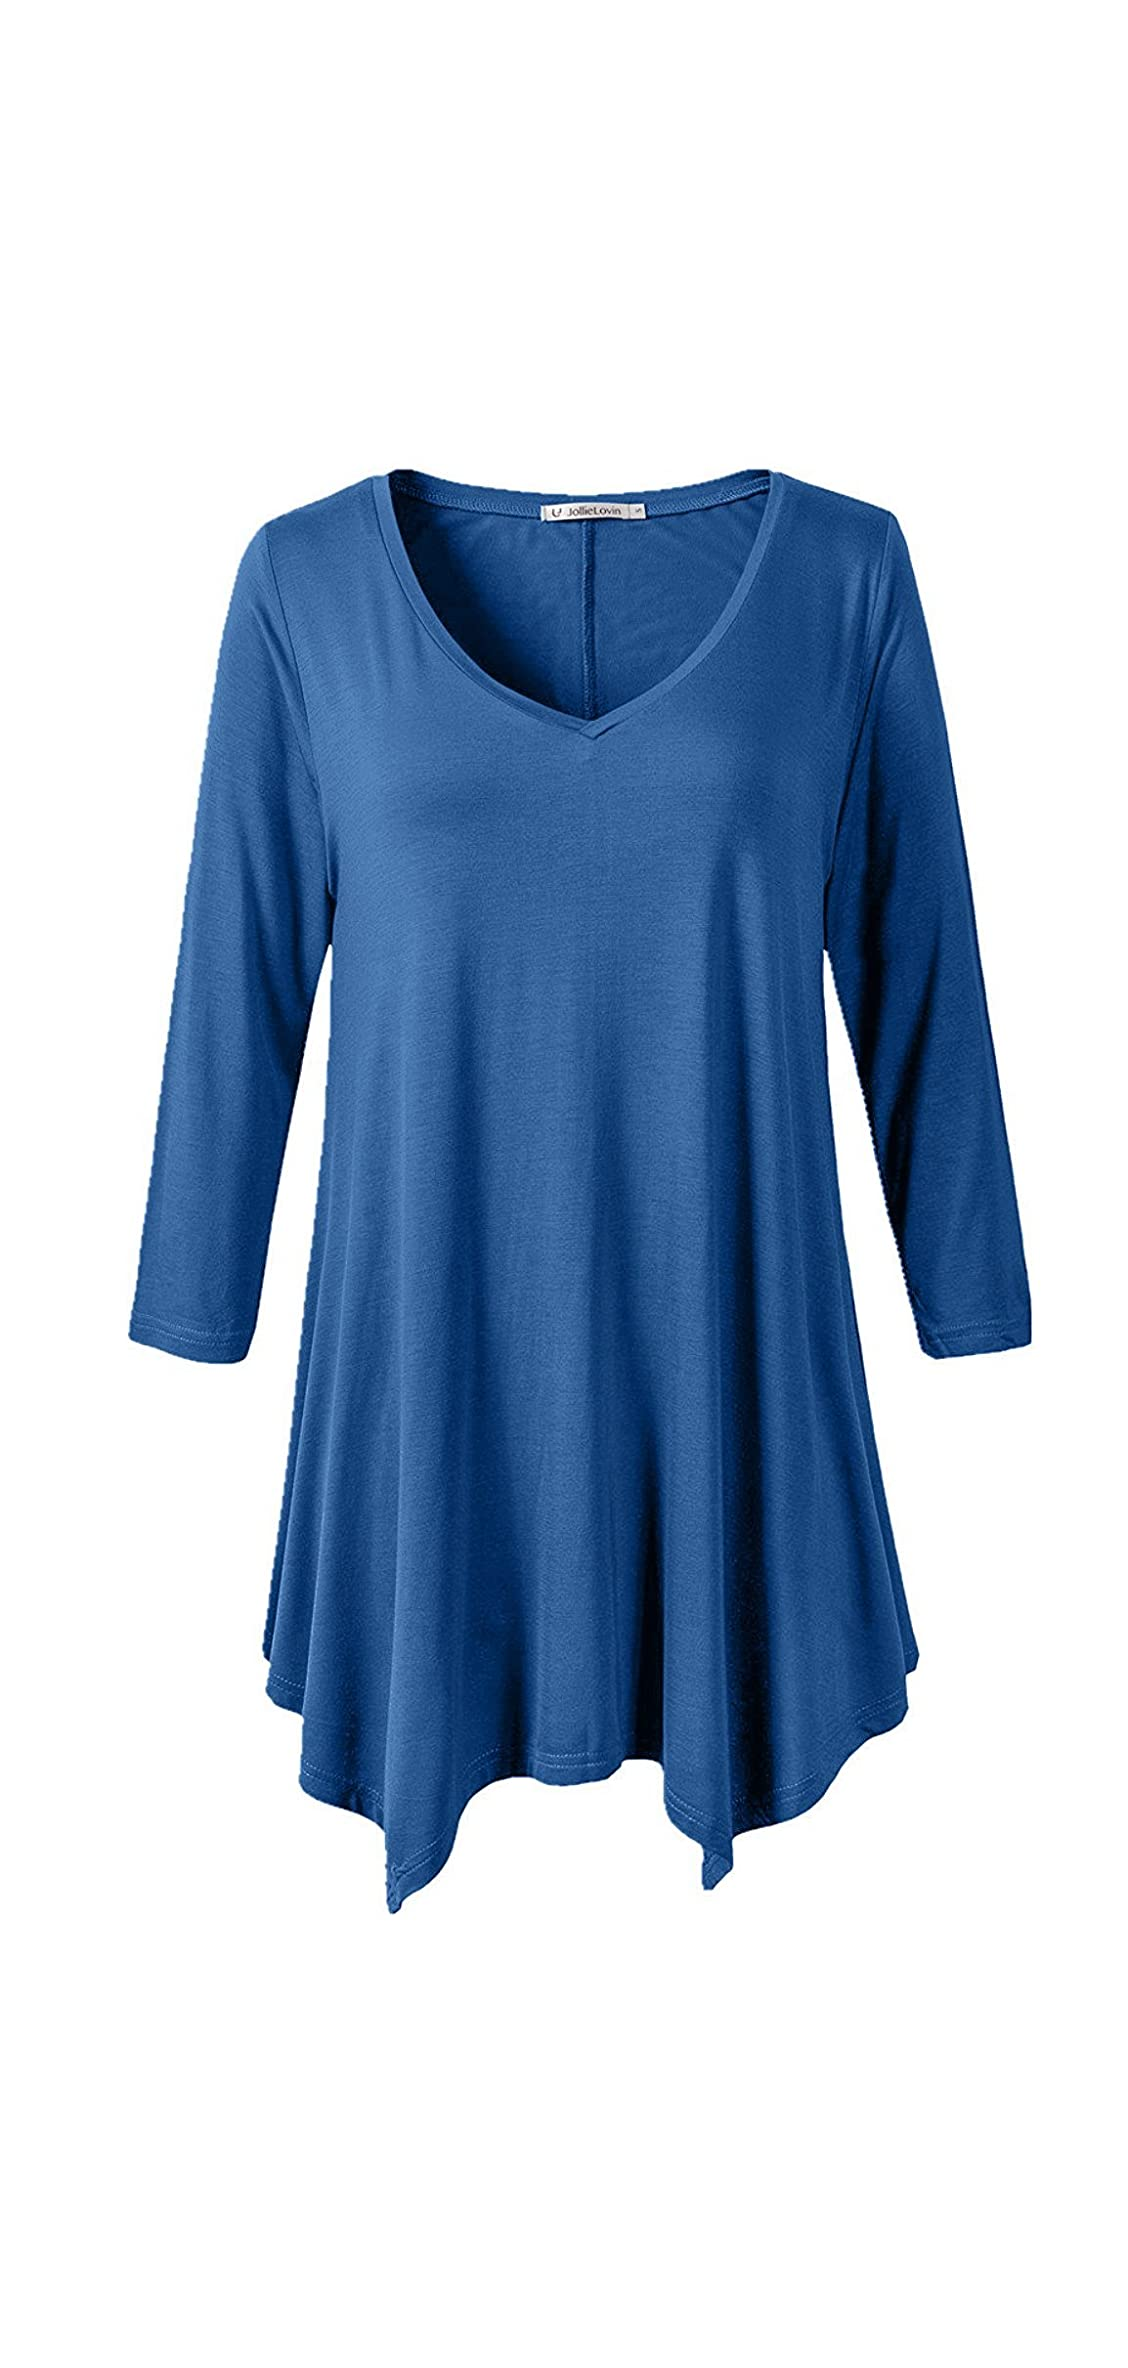 Womens Plus Size / Sleeve V Neck Flowy T Shirt Top